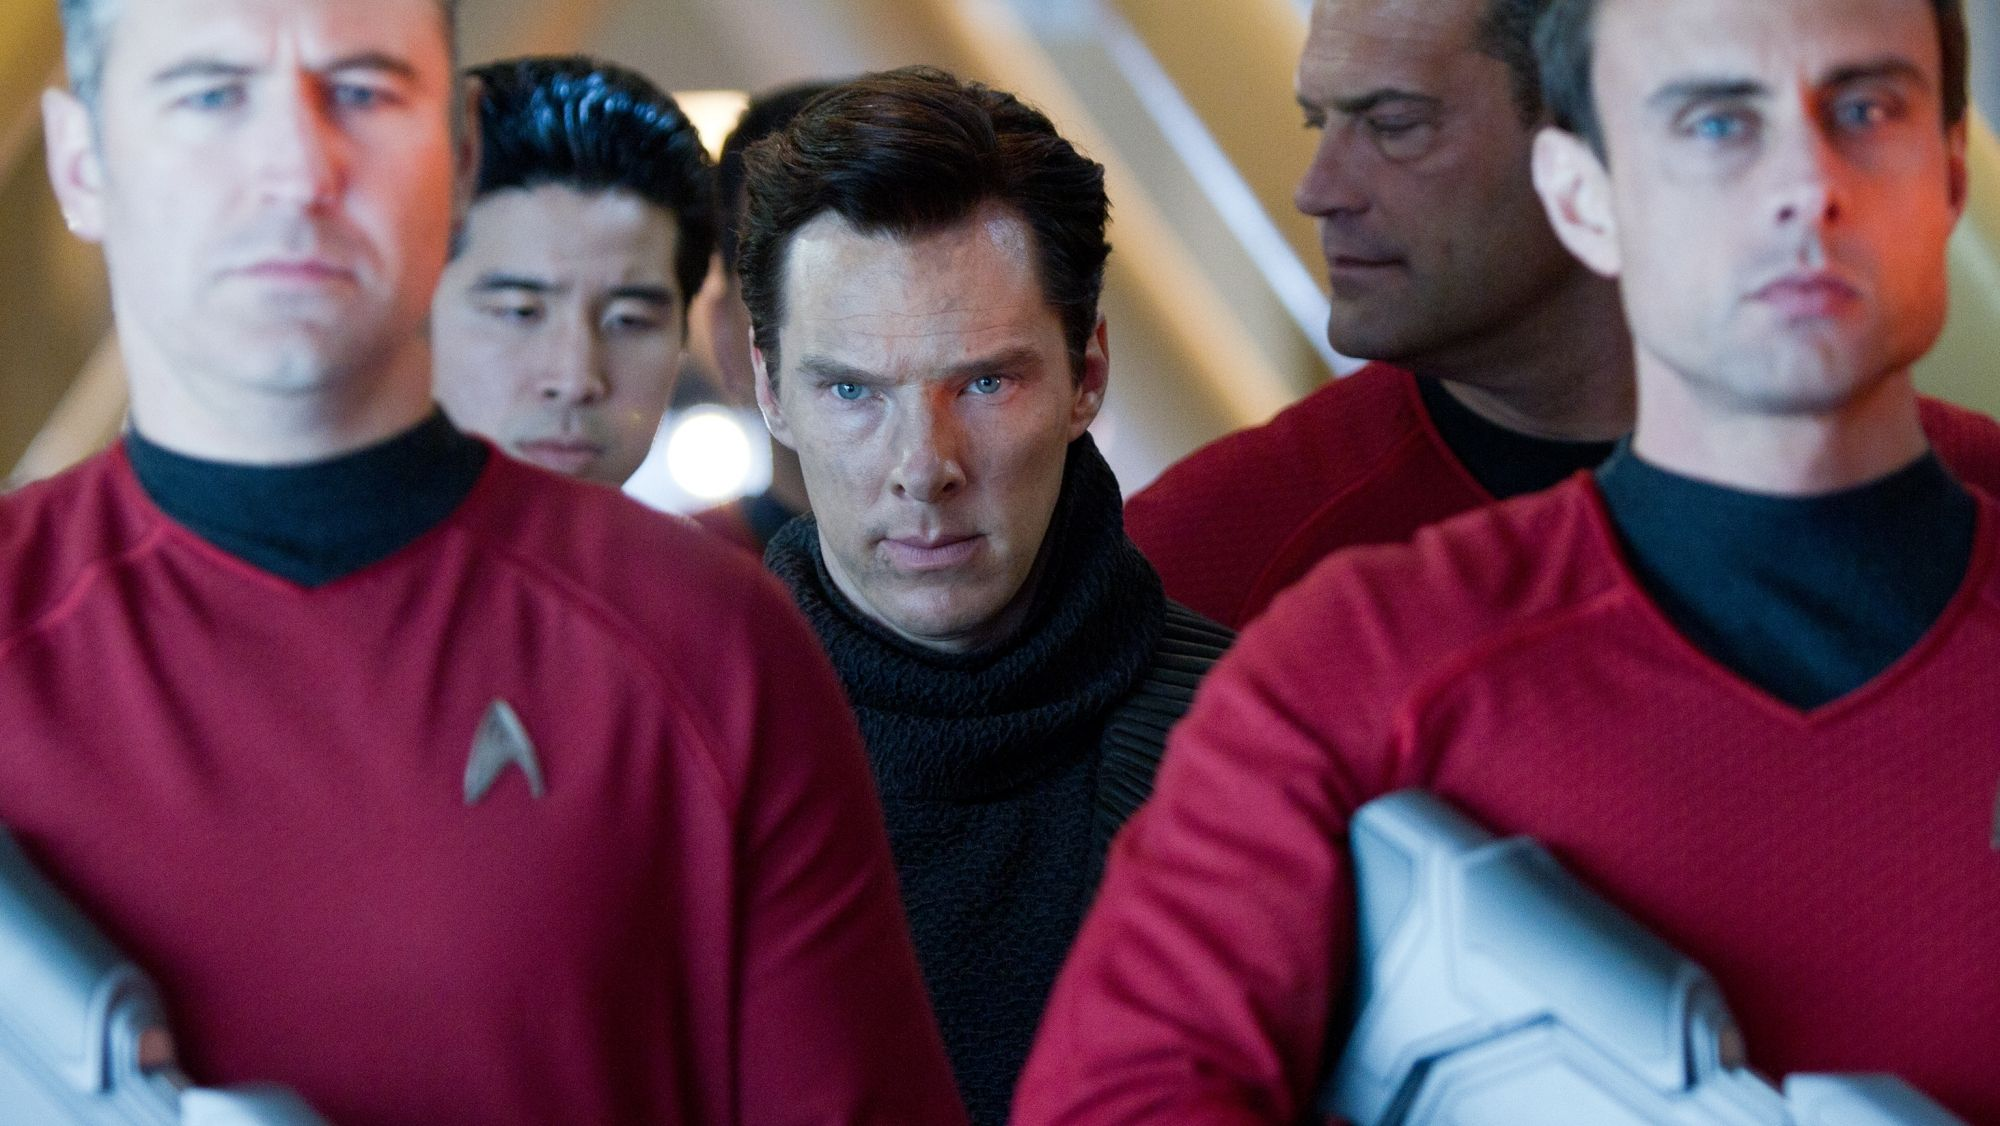 Benedict Cumberbatch is John Harrison in #StarTrek #IntoDarkness. Book released 5/21, Movie released 5/17